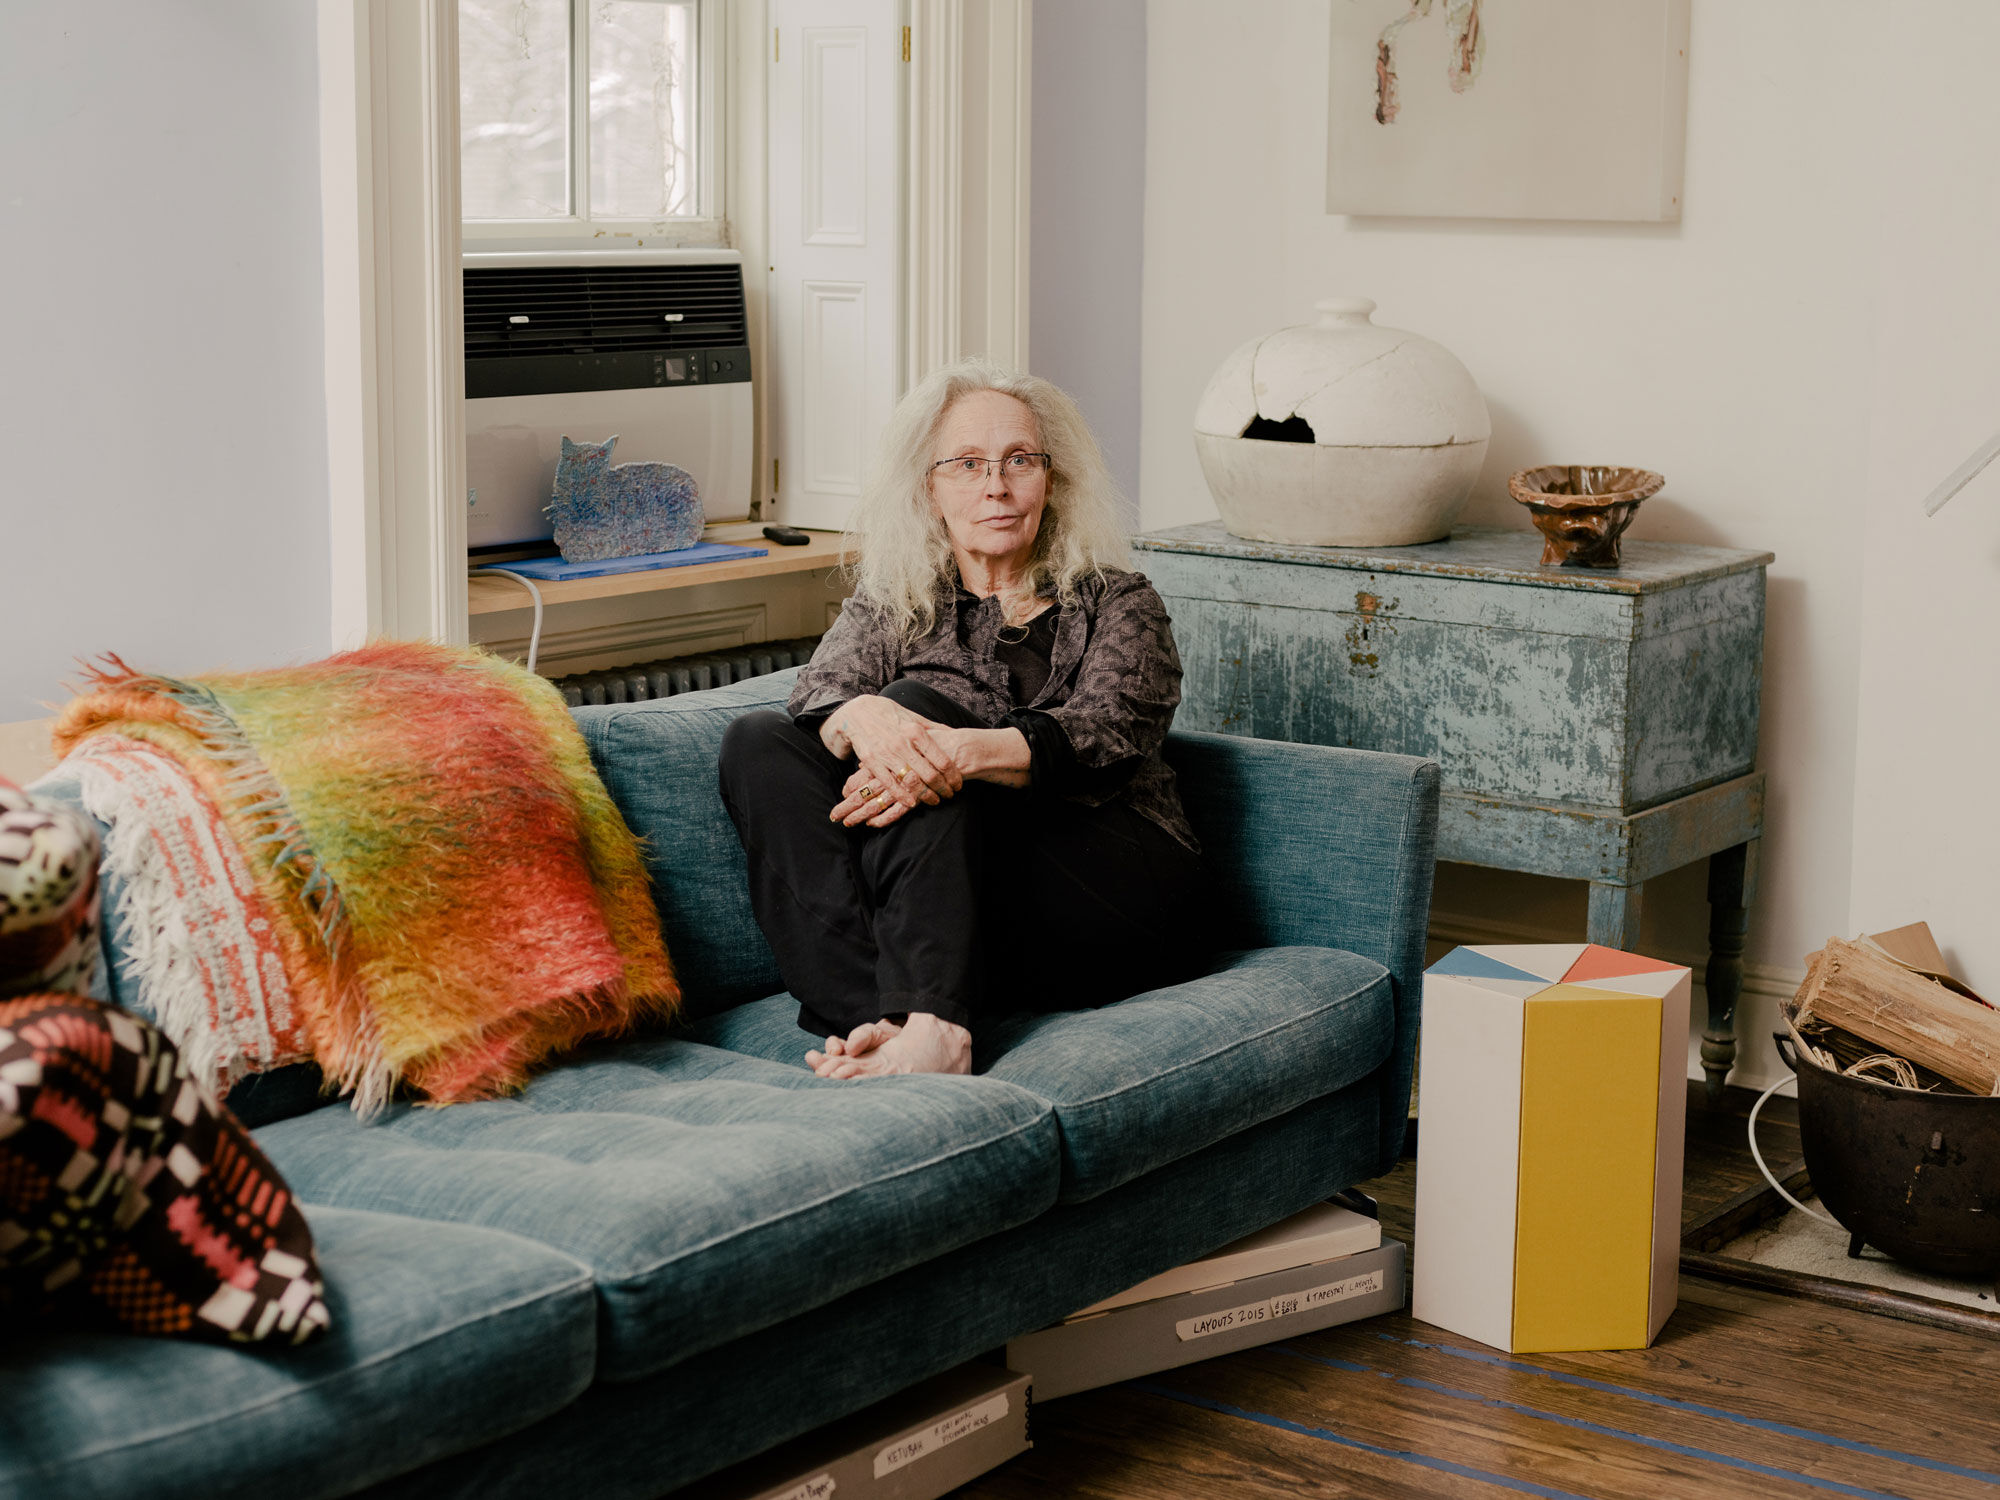 Portrait of Kiki Smith in her New York home and studio. Below the couch, archival boxes store rubbings and templates from past work. Portrait by Daniel Dorsa for Artsy.